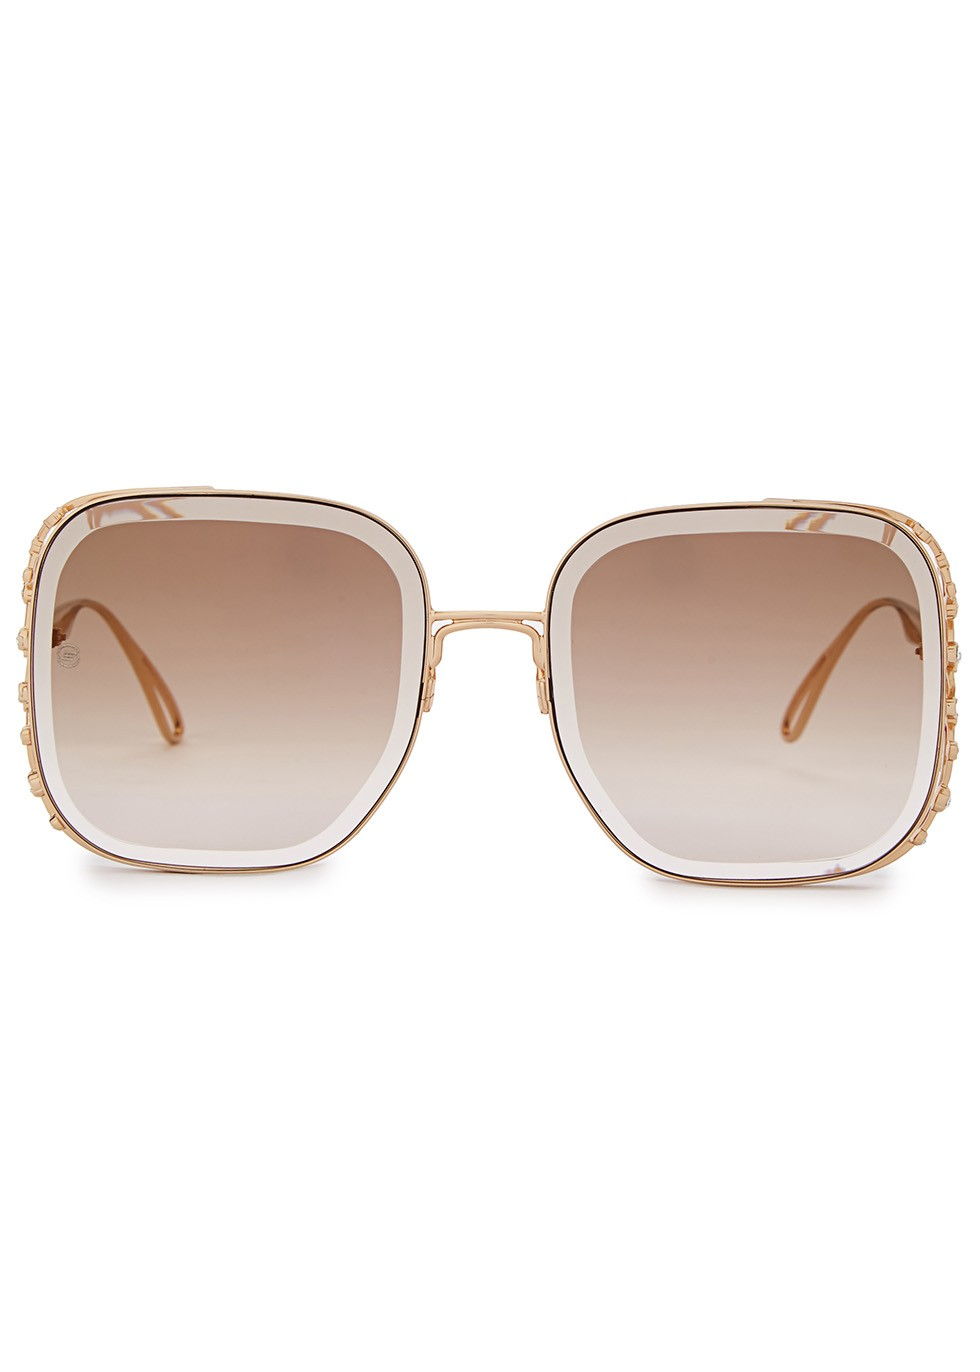 Ellie Saab square frame sunglasses, £935